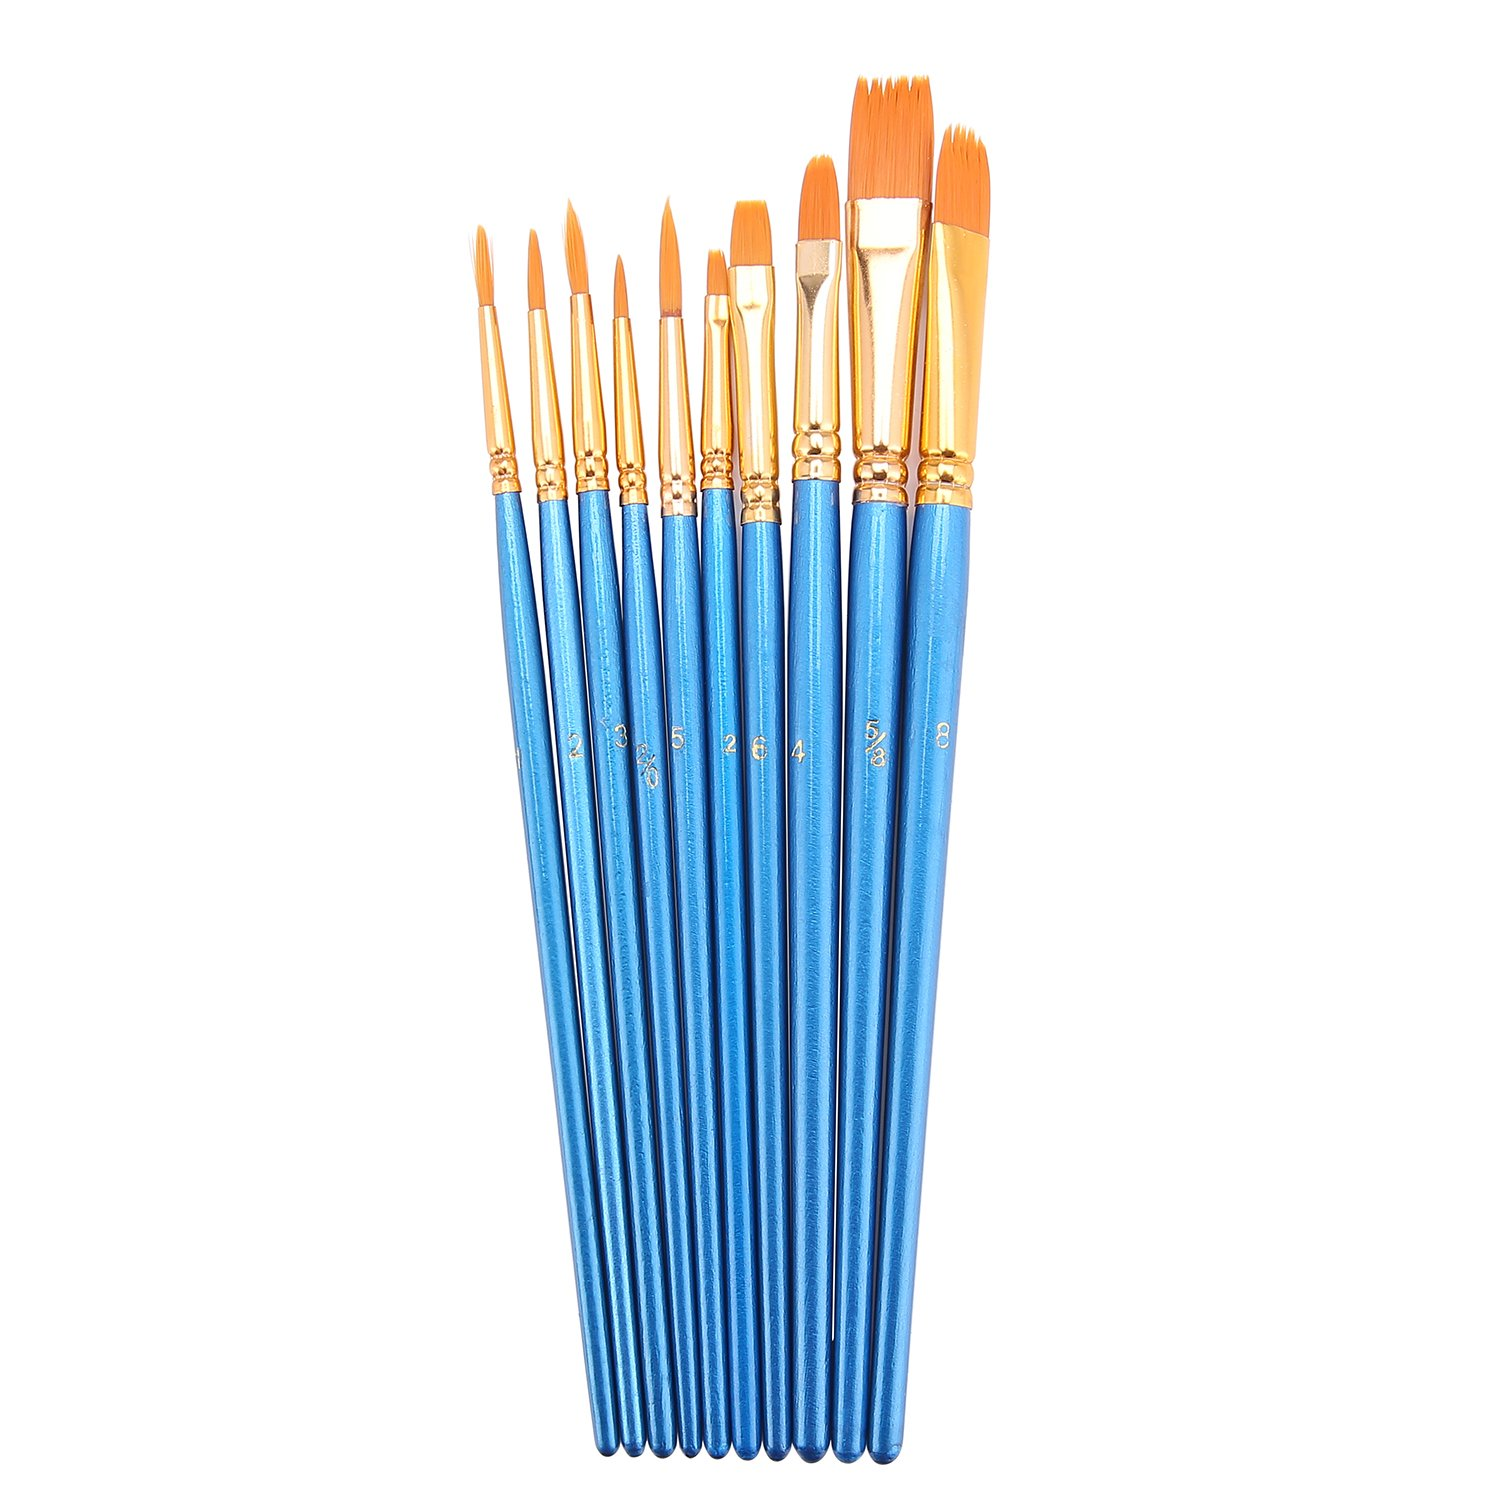 Hundor 10Pieces Paint Brushes Blue Round Pointed Tip Nylon Hair Brush Set 4336962576